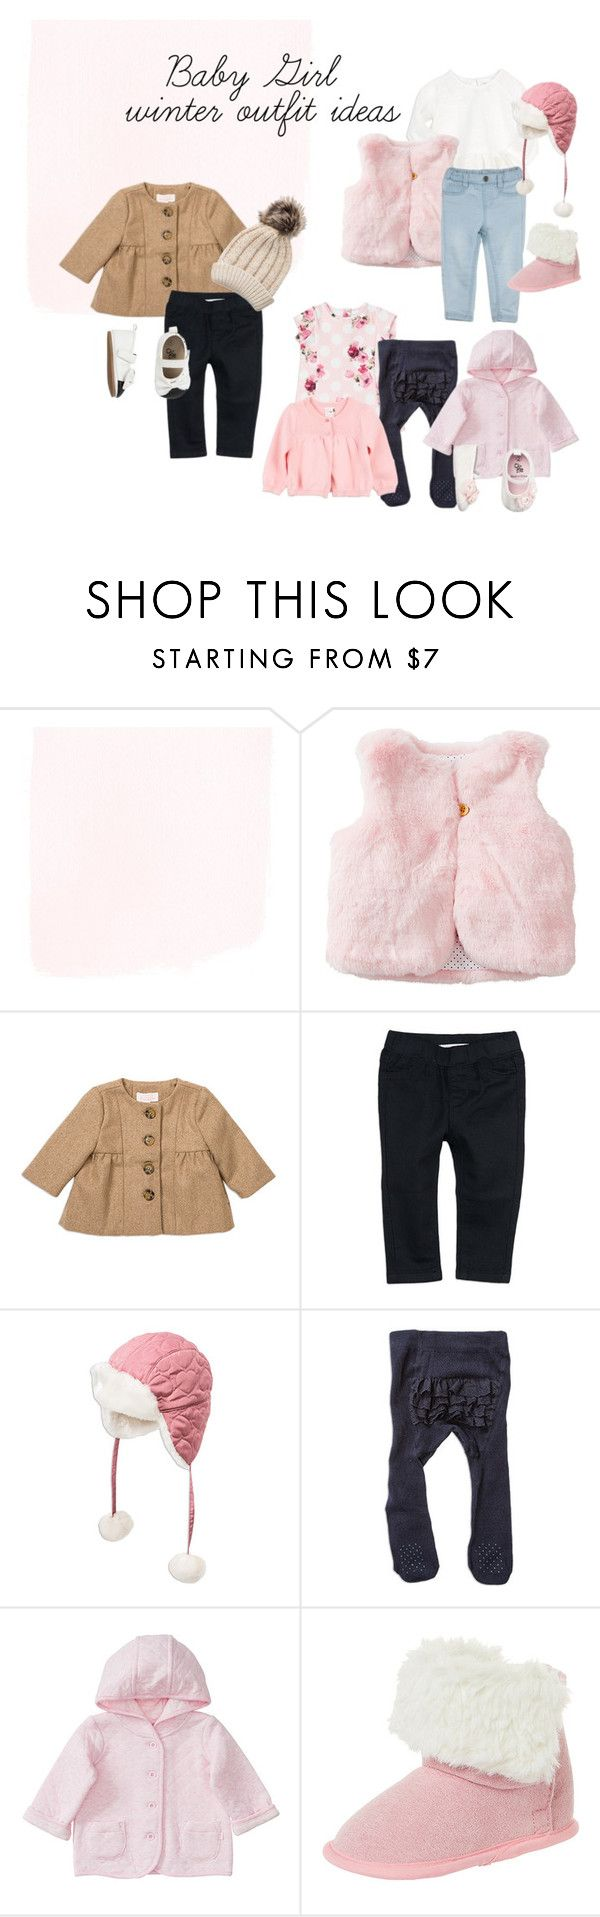 """""""BABY GIRL - Winter Outfit Ideas"""" by mrsandmummy on Polyvore"""